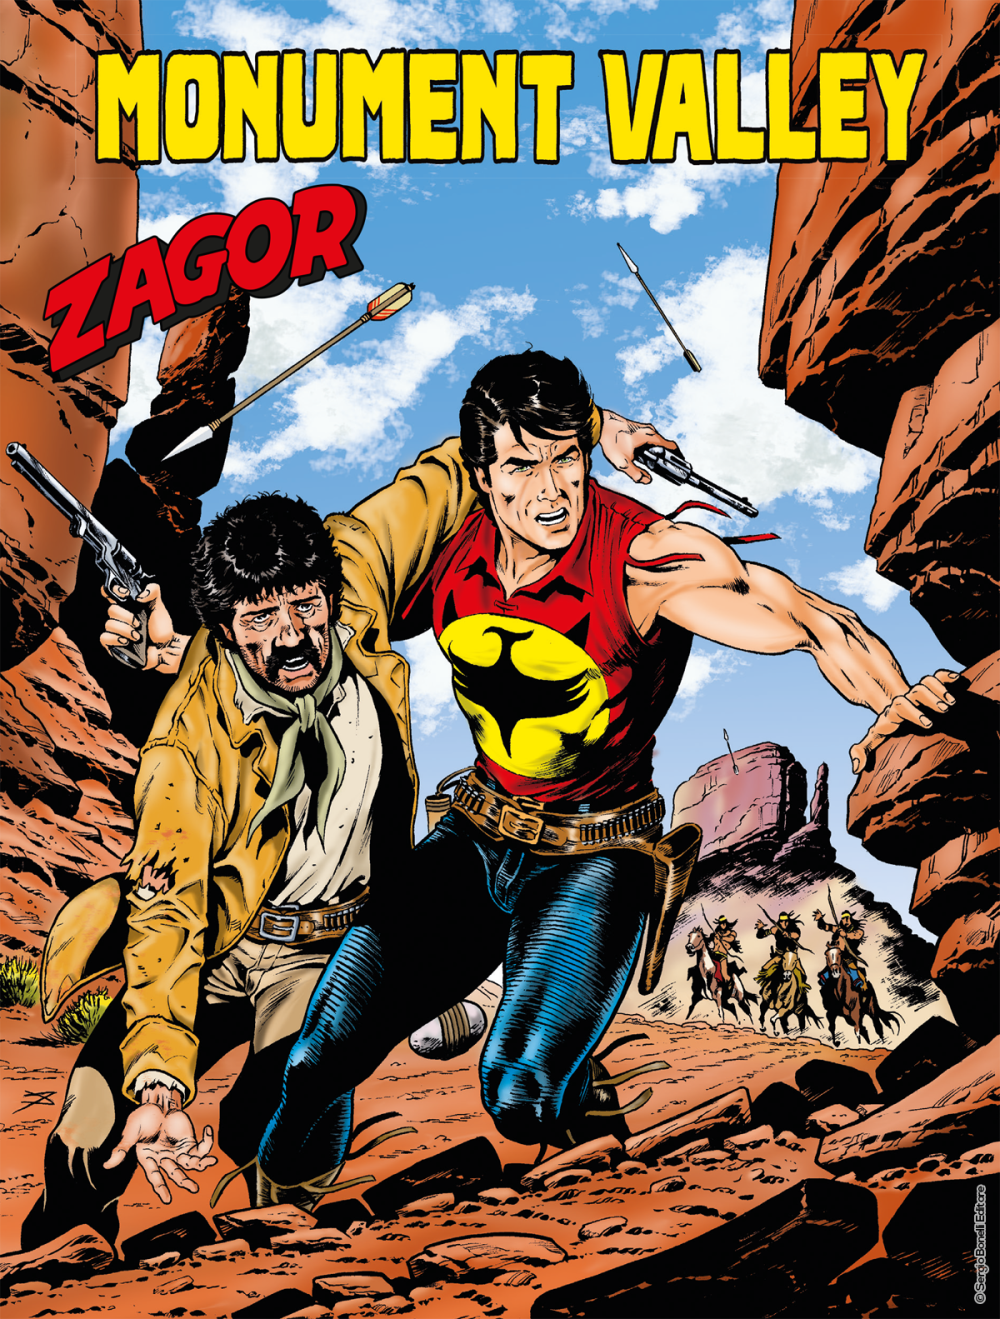 Anteprima nuove cover - Pagina 31 1543419080958.png--monument_valley___zagor_642_cover